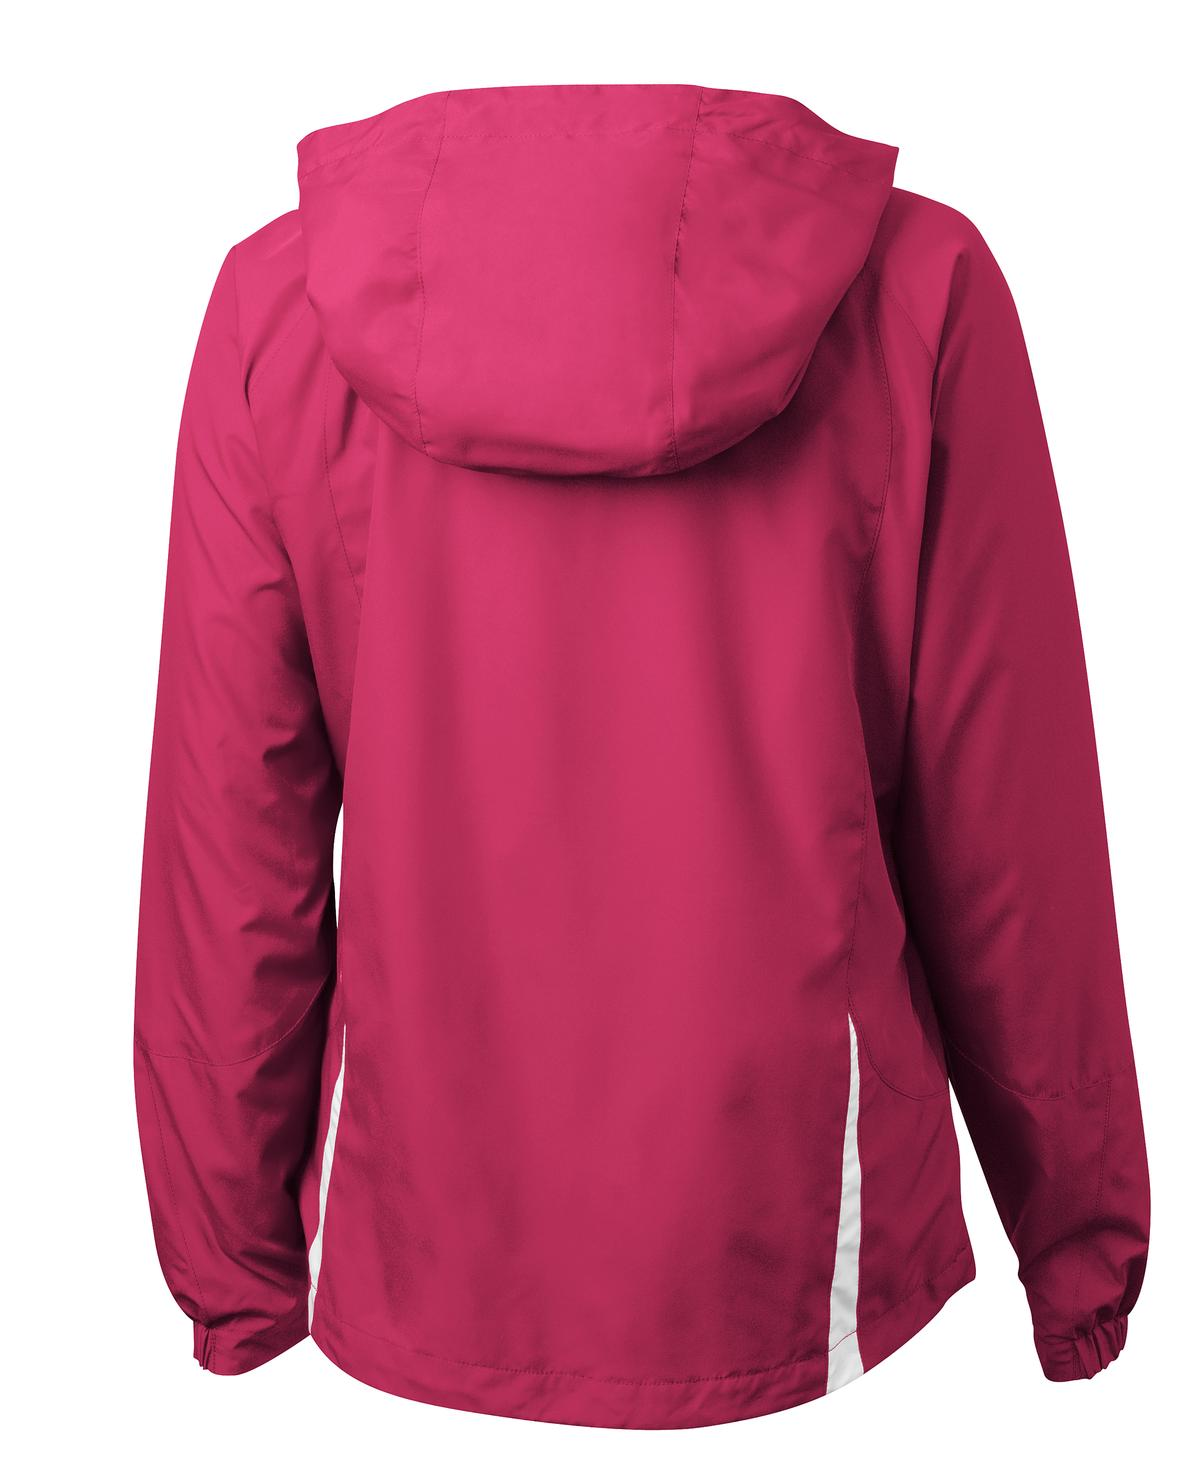 Mafoose Women's Colorblock Hooded Raglan Jacket Pink Raspberry/White-Back